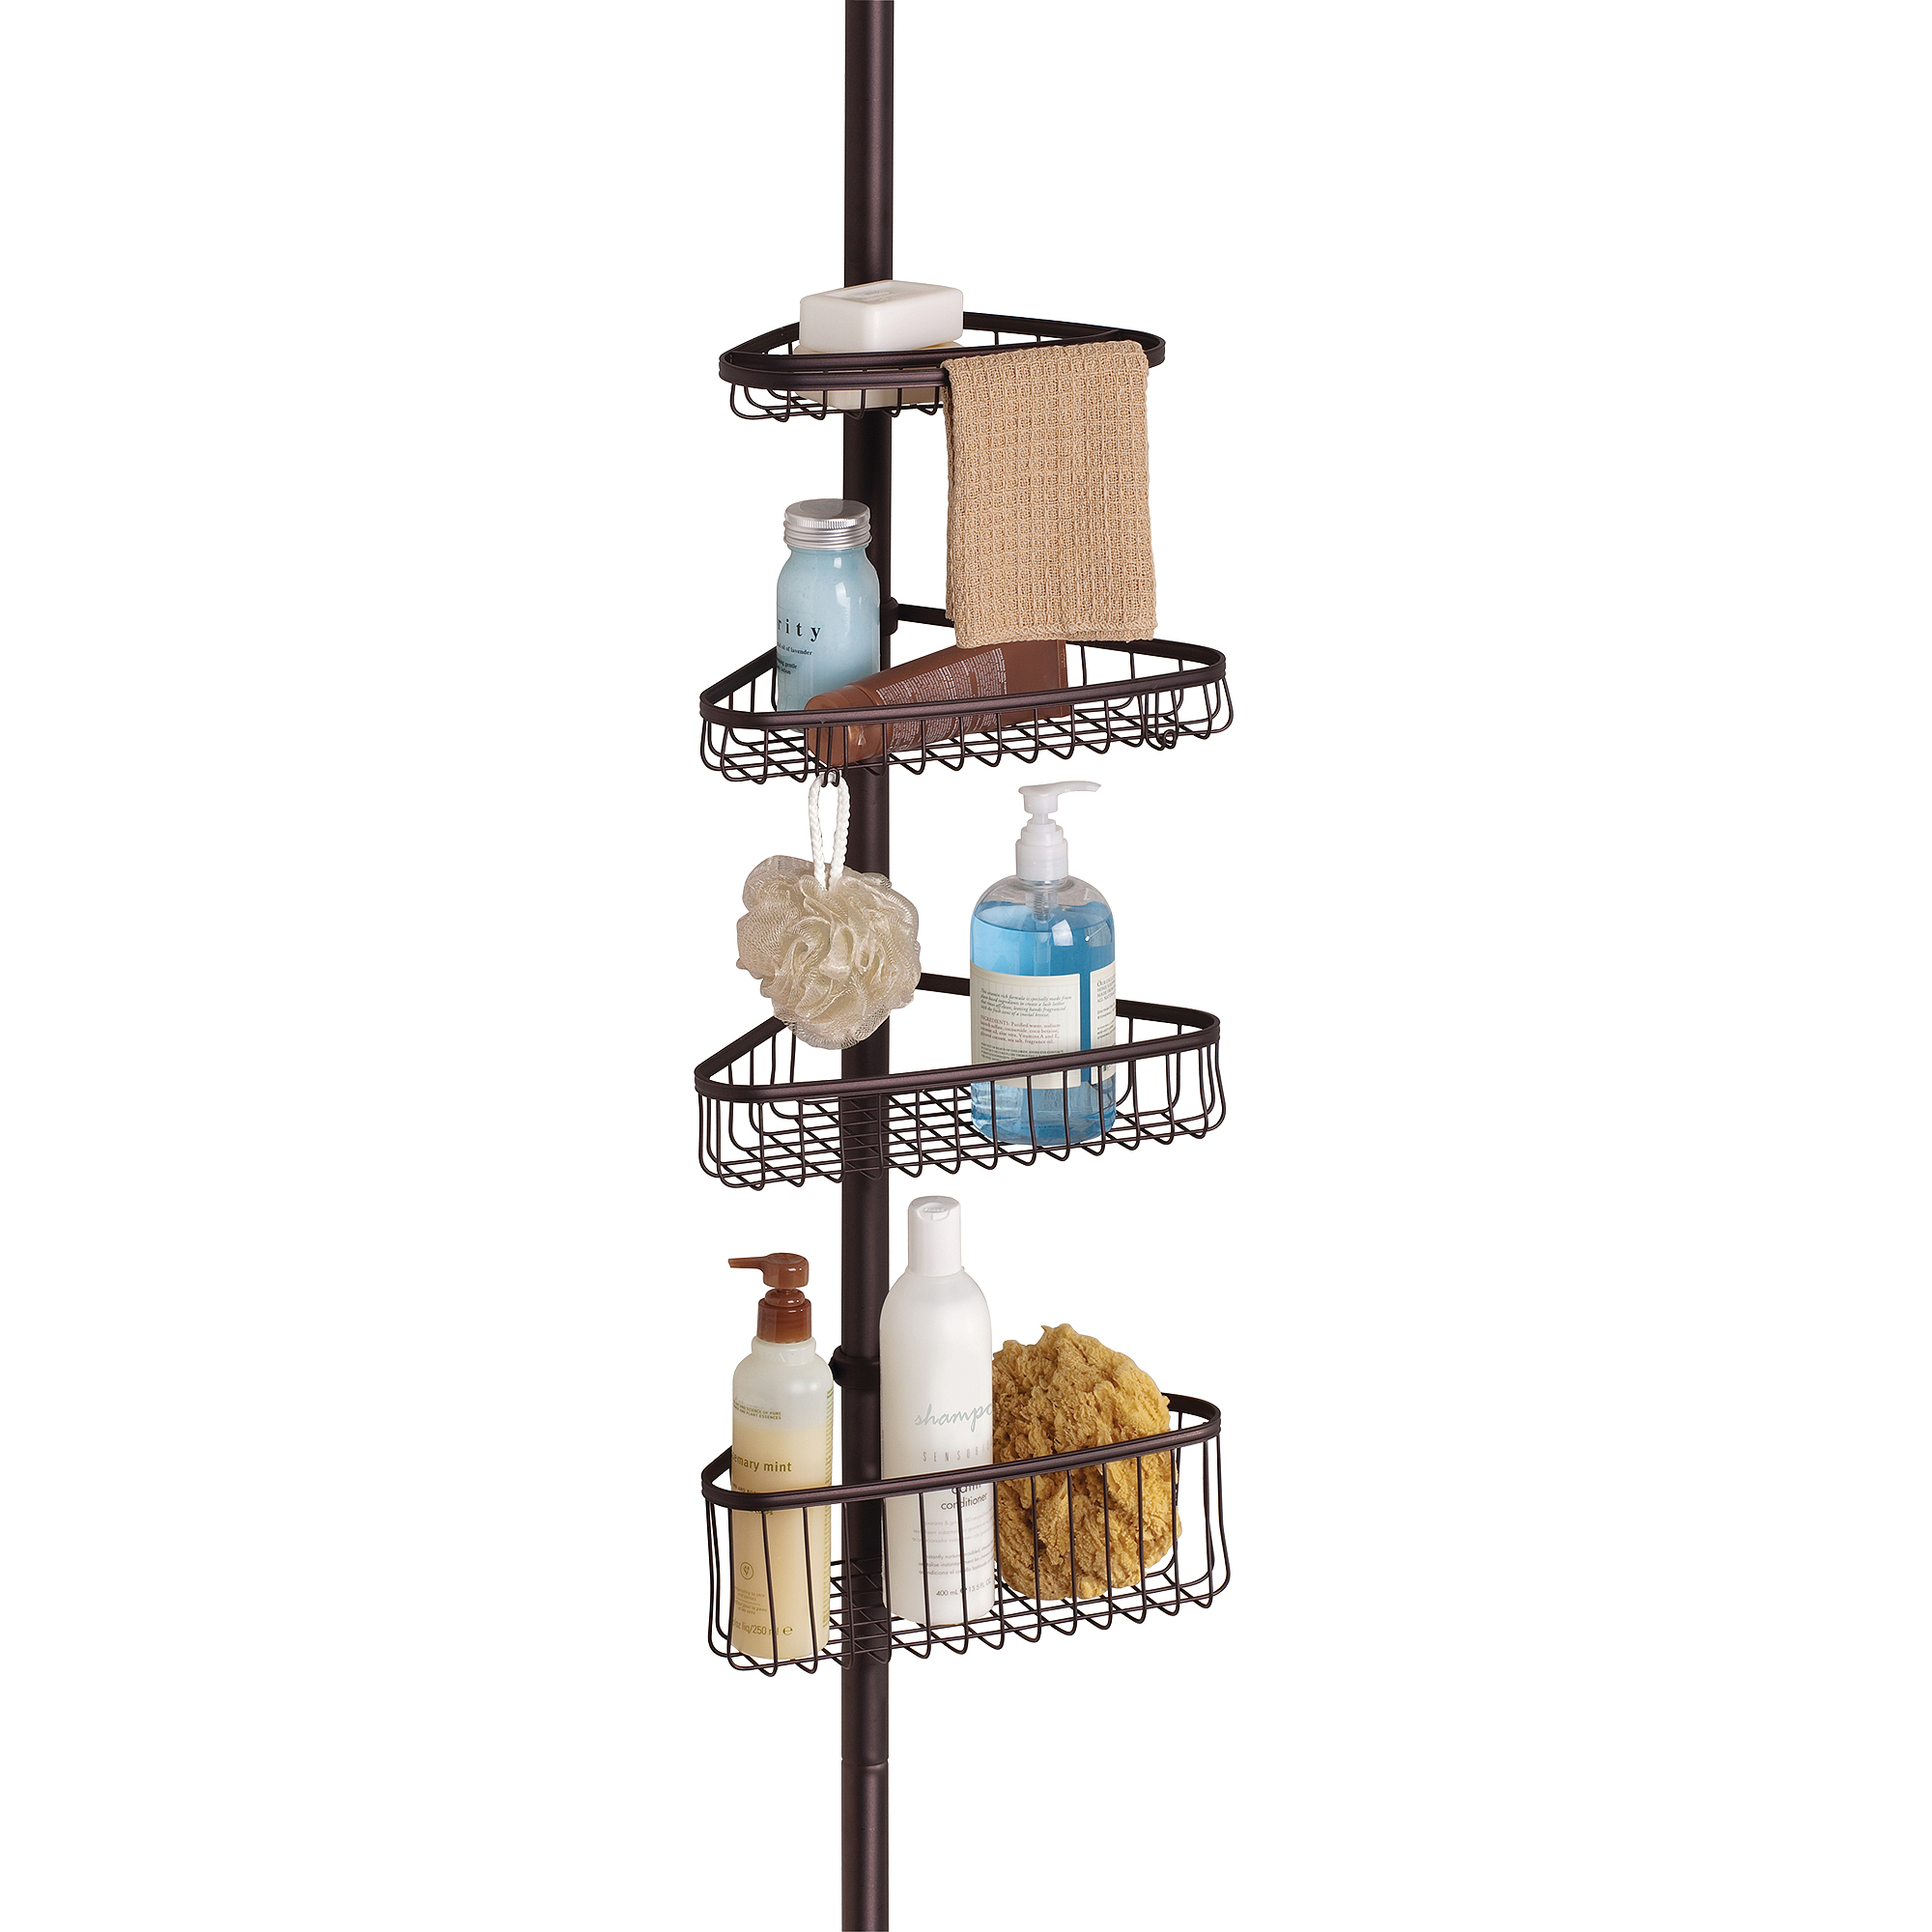 InterDesign York Tension Shower Caddy 2 - Walmart.com